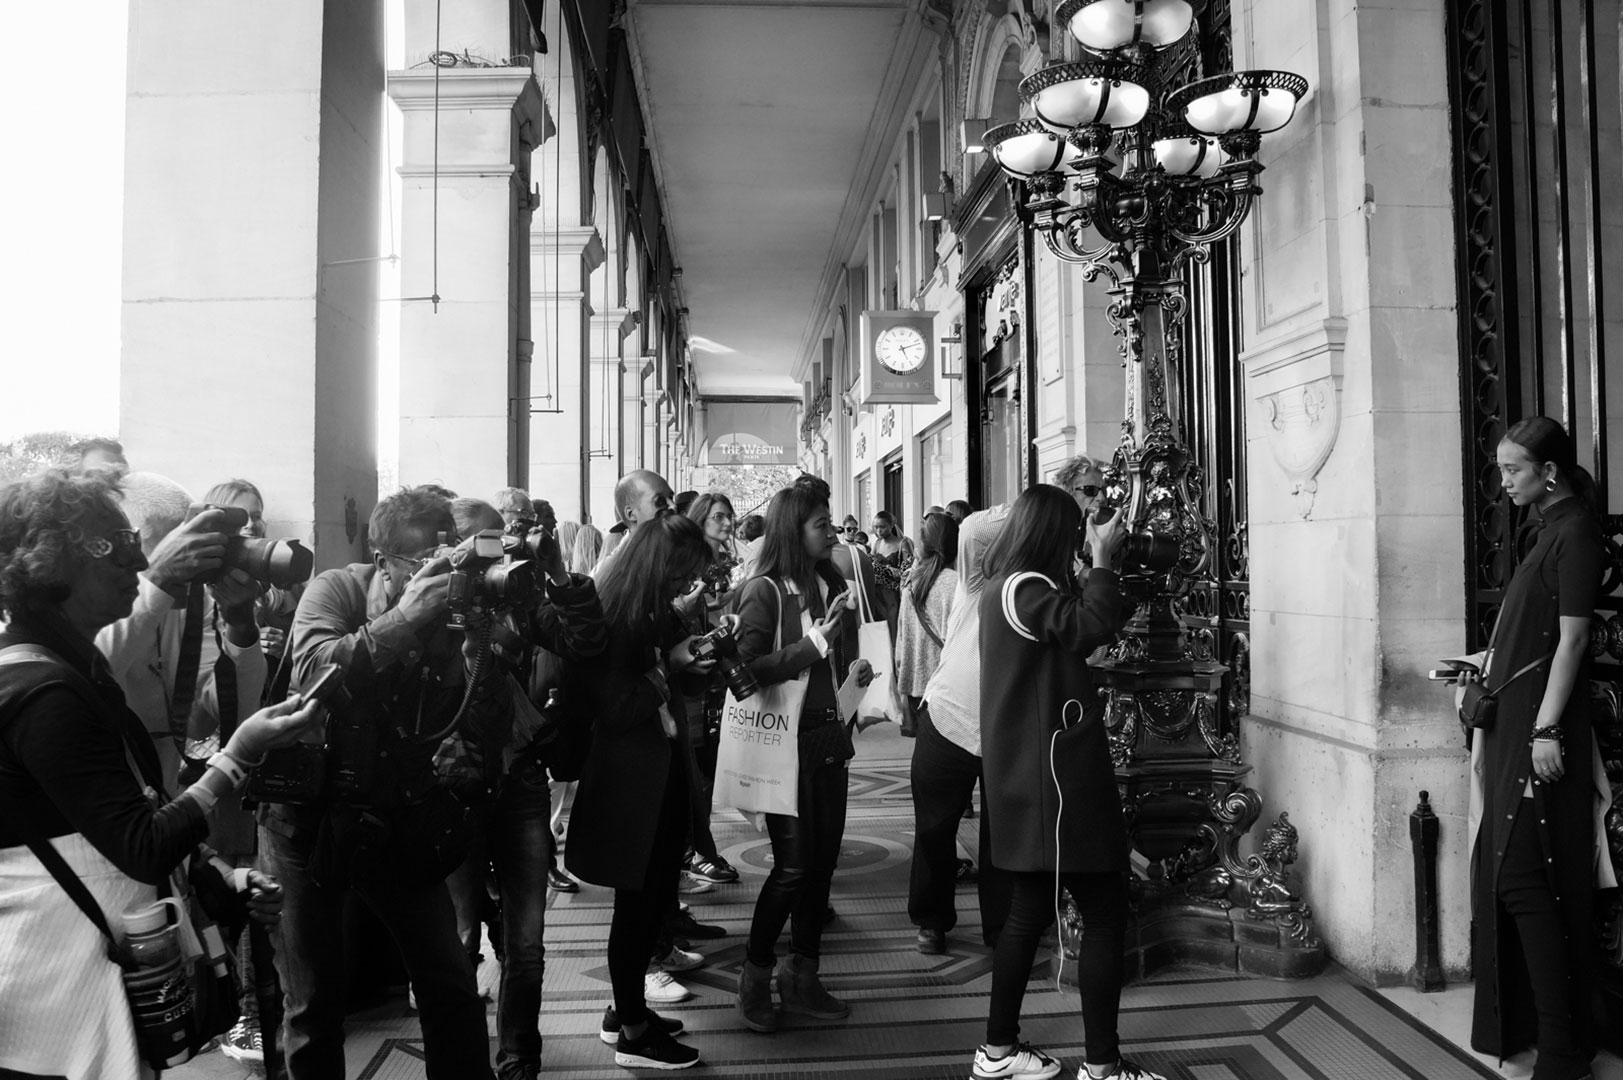 my-paris-fashion-week-diary-paris-by-polina-paraskevopoulou-all-rights-reserved-29